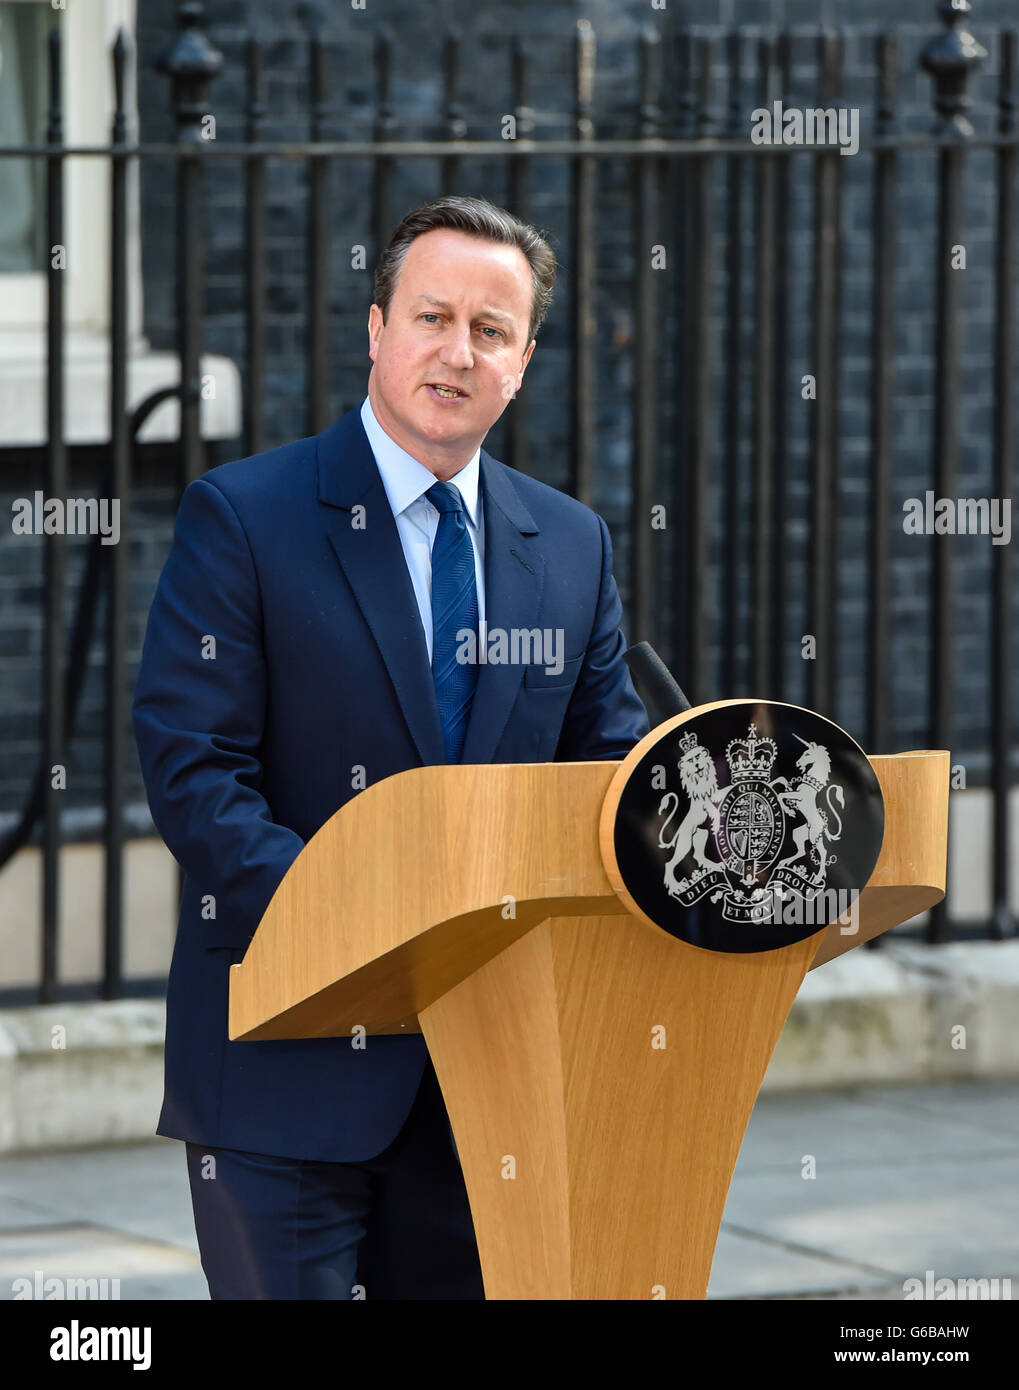 London, UK. 23rd June, 2016. London 24th June 2016, Prime Minister David Cameron resigns as a result of the EU Referendum Stock Photo